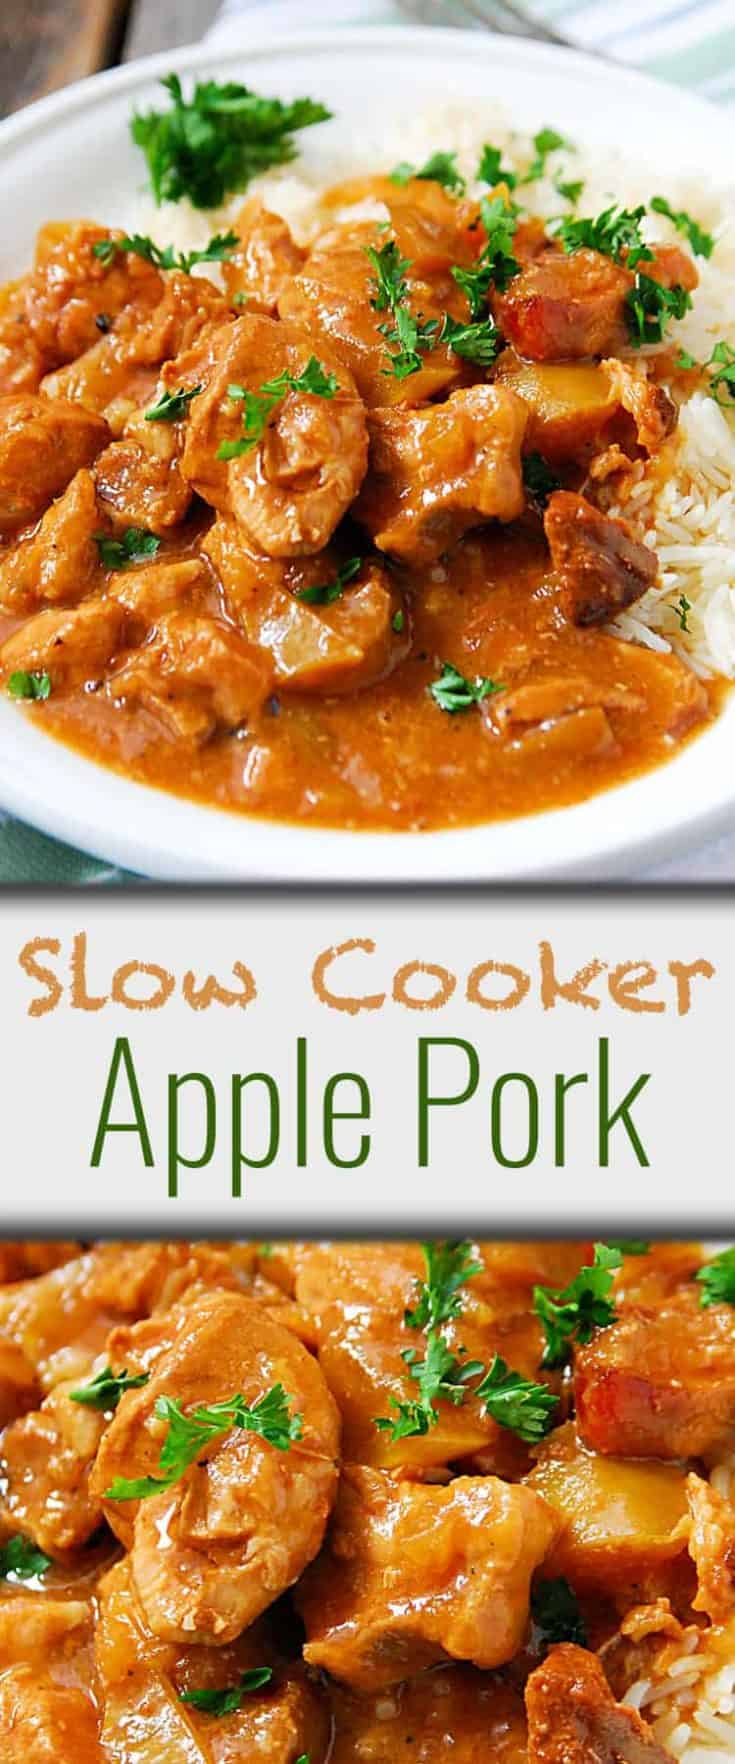 Slow Cooker Apple Pork uses common ingredients and is crockpot convenient. Very easy and so delicious! This slow cooker pork recipe is perfect for everyday to holiday dinners! #slowcooker #porkrecipe #slowcookerpork #applepork